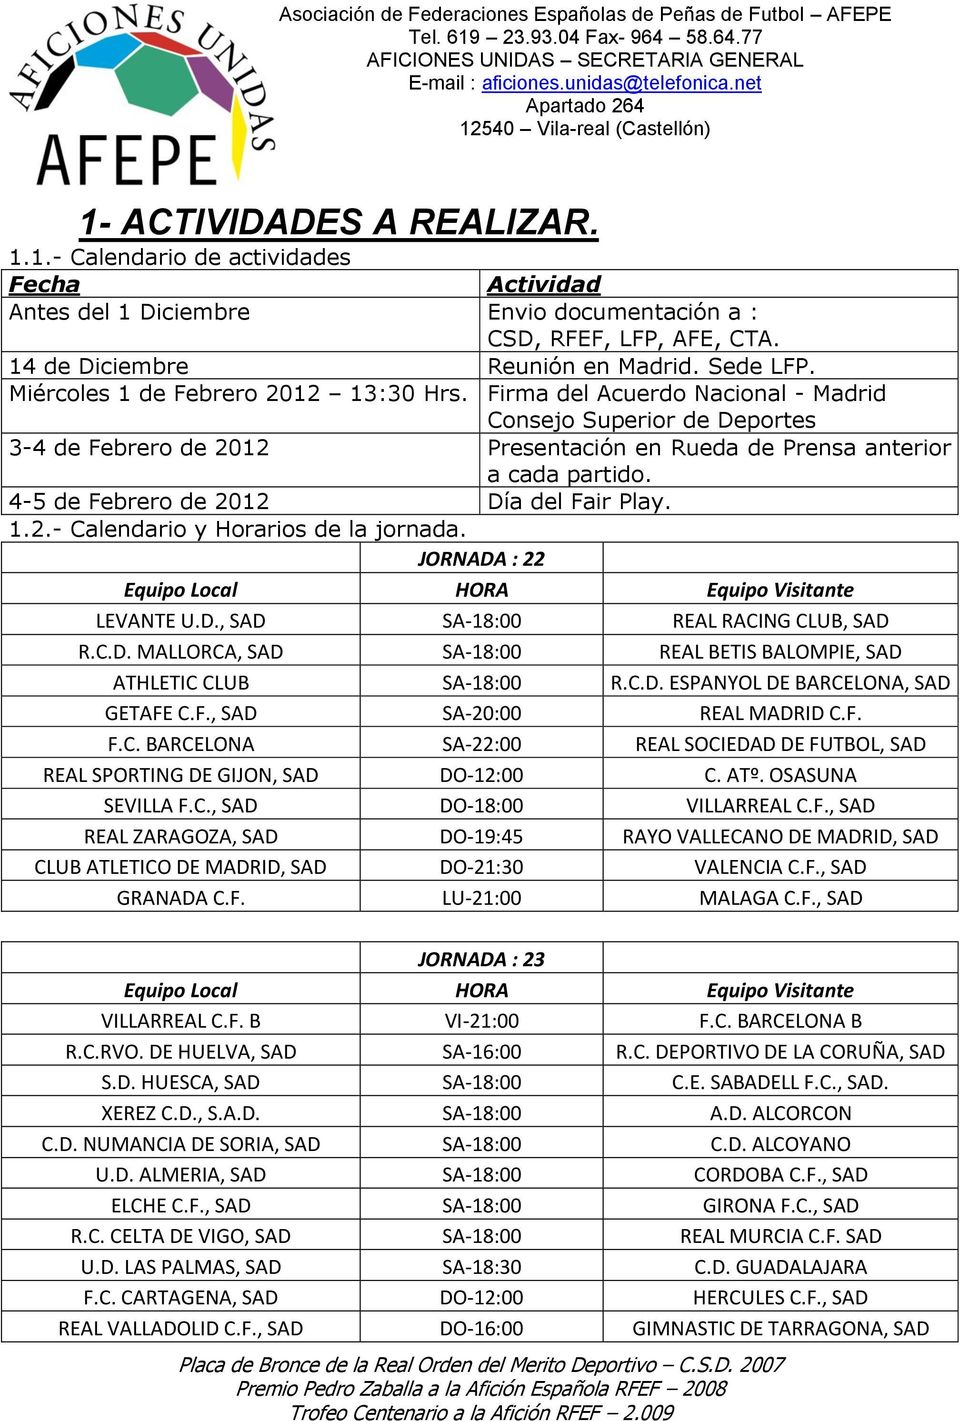 4-5 de Febrero de 2012 Día del Fair Play. 1.2.- Calendario y Horarios de la jornada. JORNADA : 22 Equipo Local HORA Equipo Visitante LEVANTE U.D., SAD SA-18:00 REAL RACING CLUB, SAD R.C.D. MALLORCA, SAD SA-18:00 REAL BETIS BALOMPIE, SAD ATHLETIC CLUB SA-18:00 R.